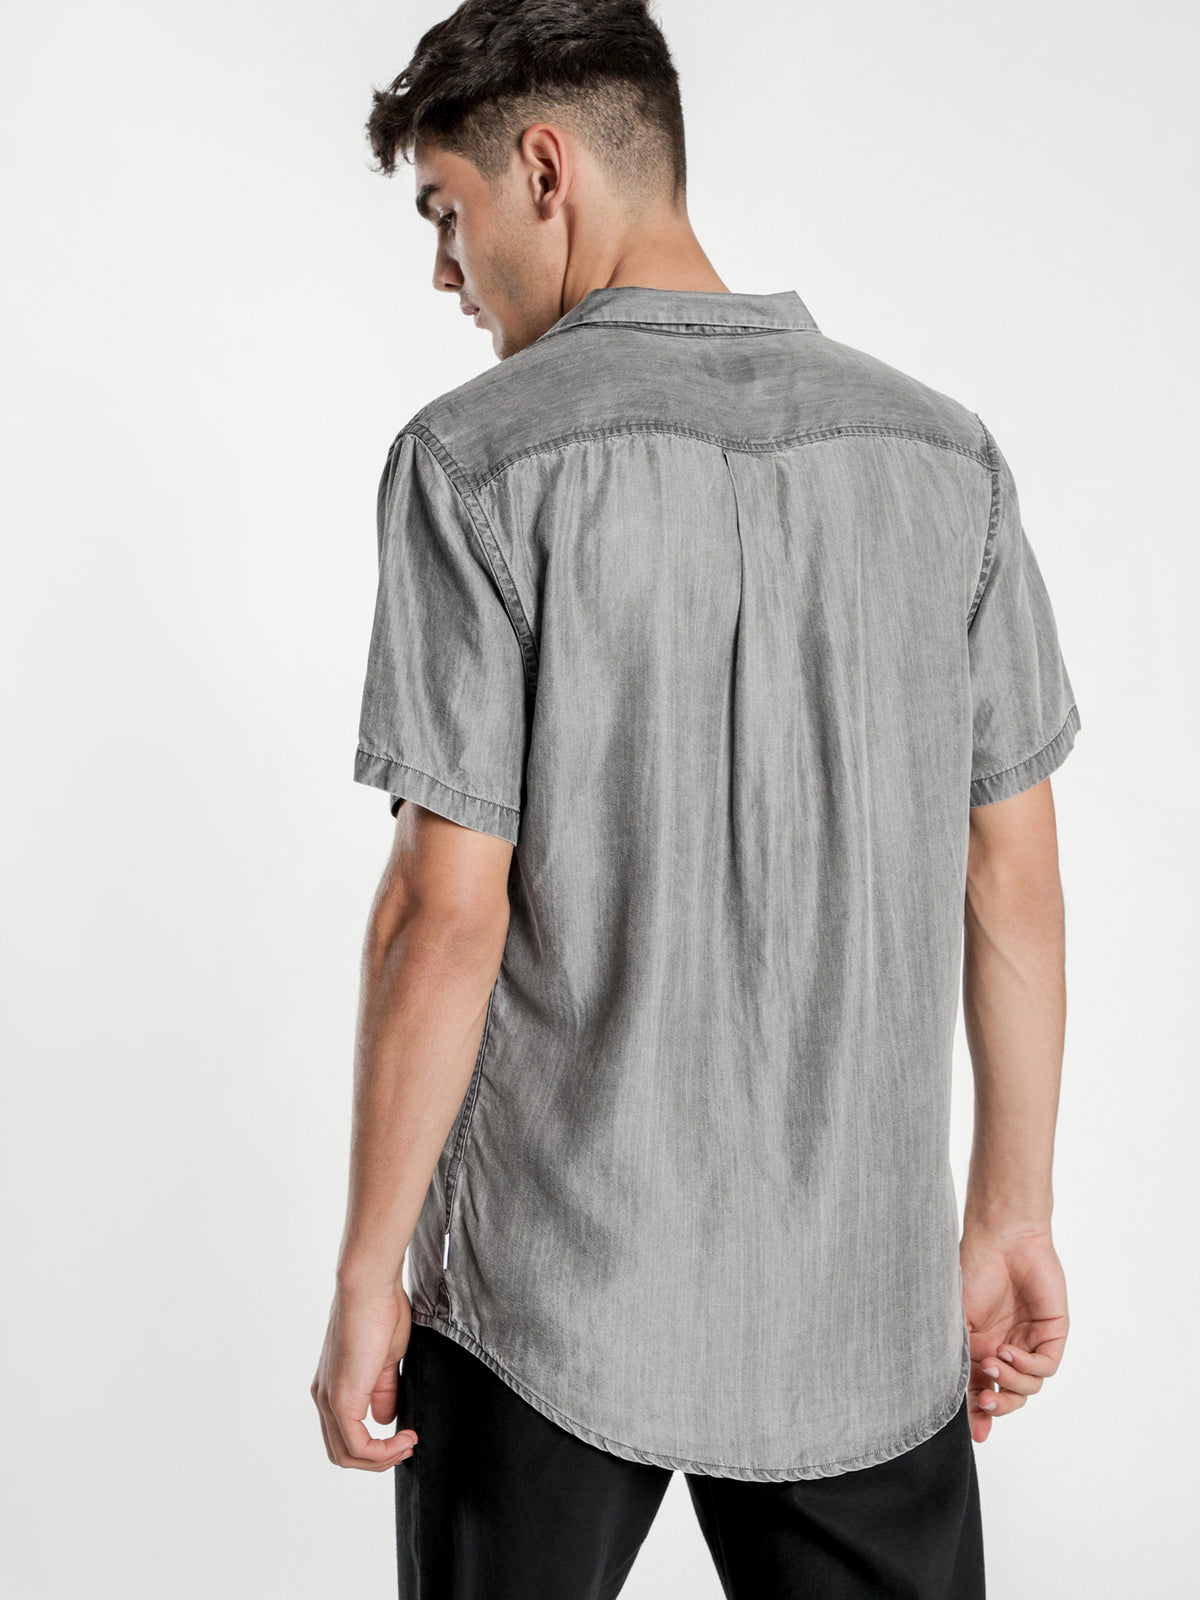 Zeek Short Sleeve Shirt in Washed Black